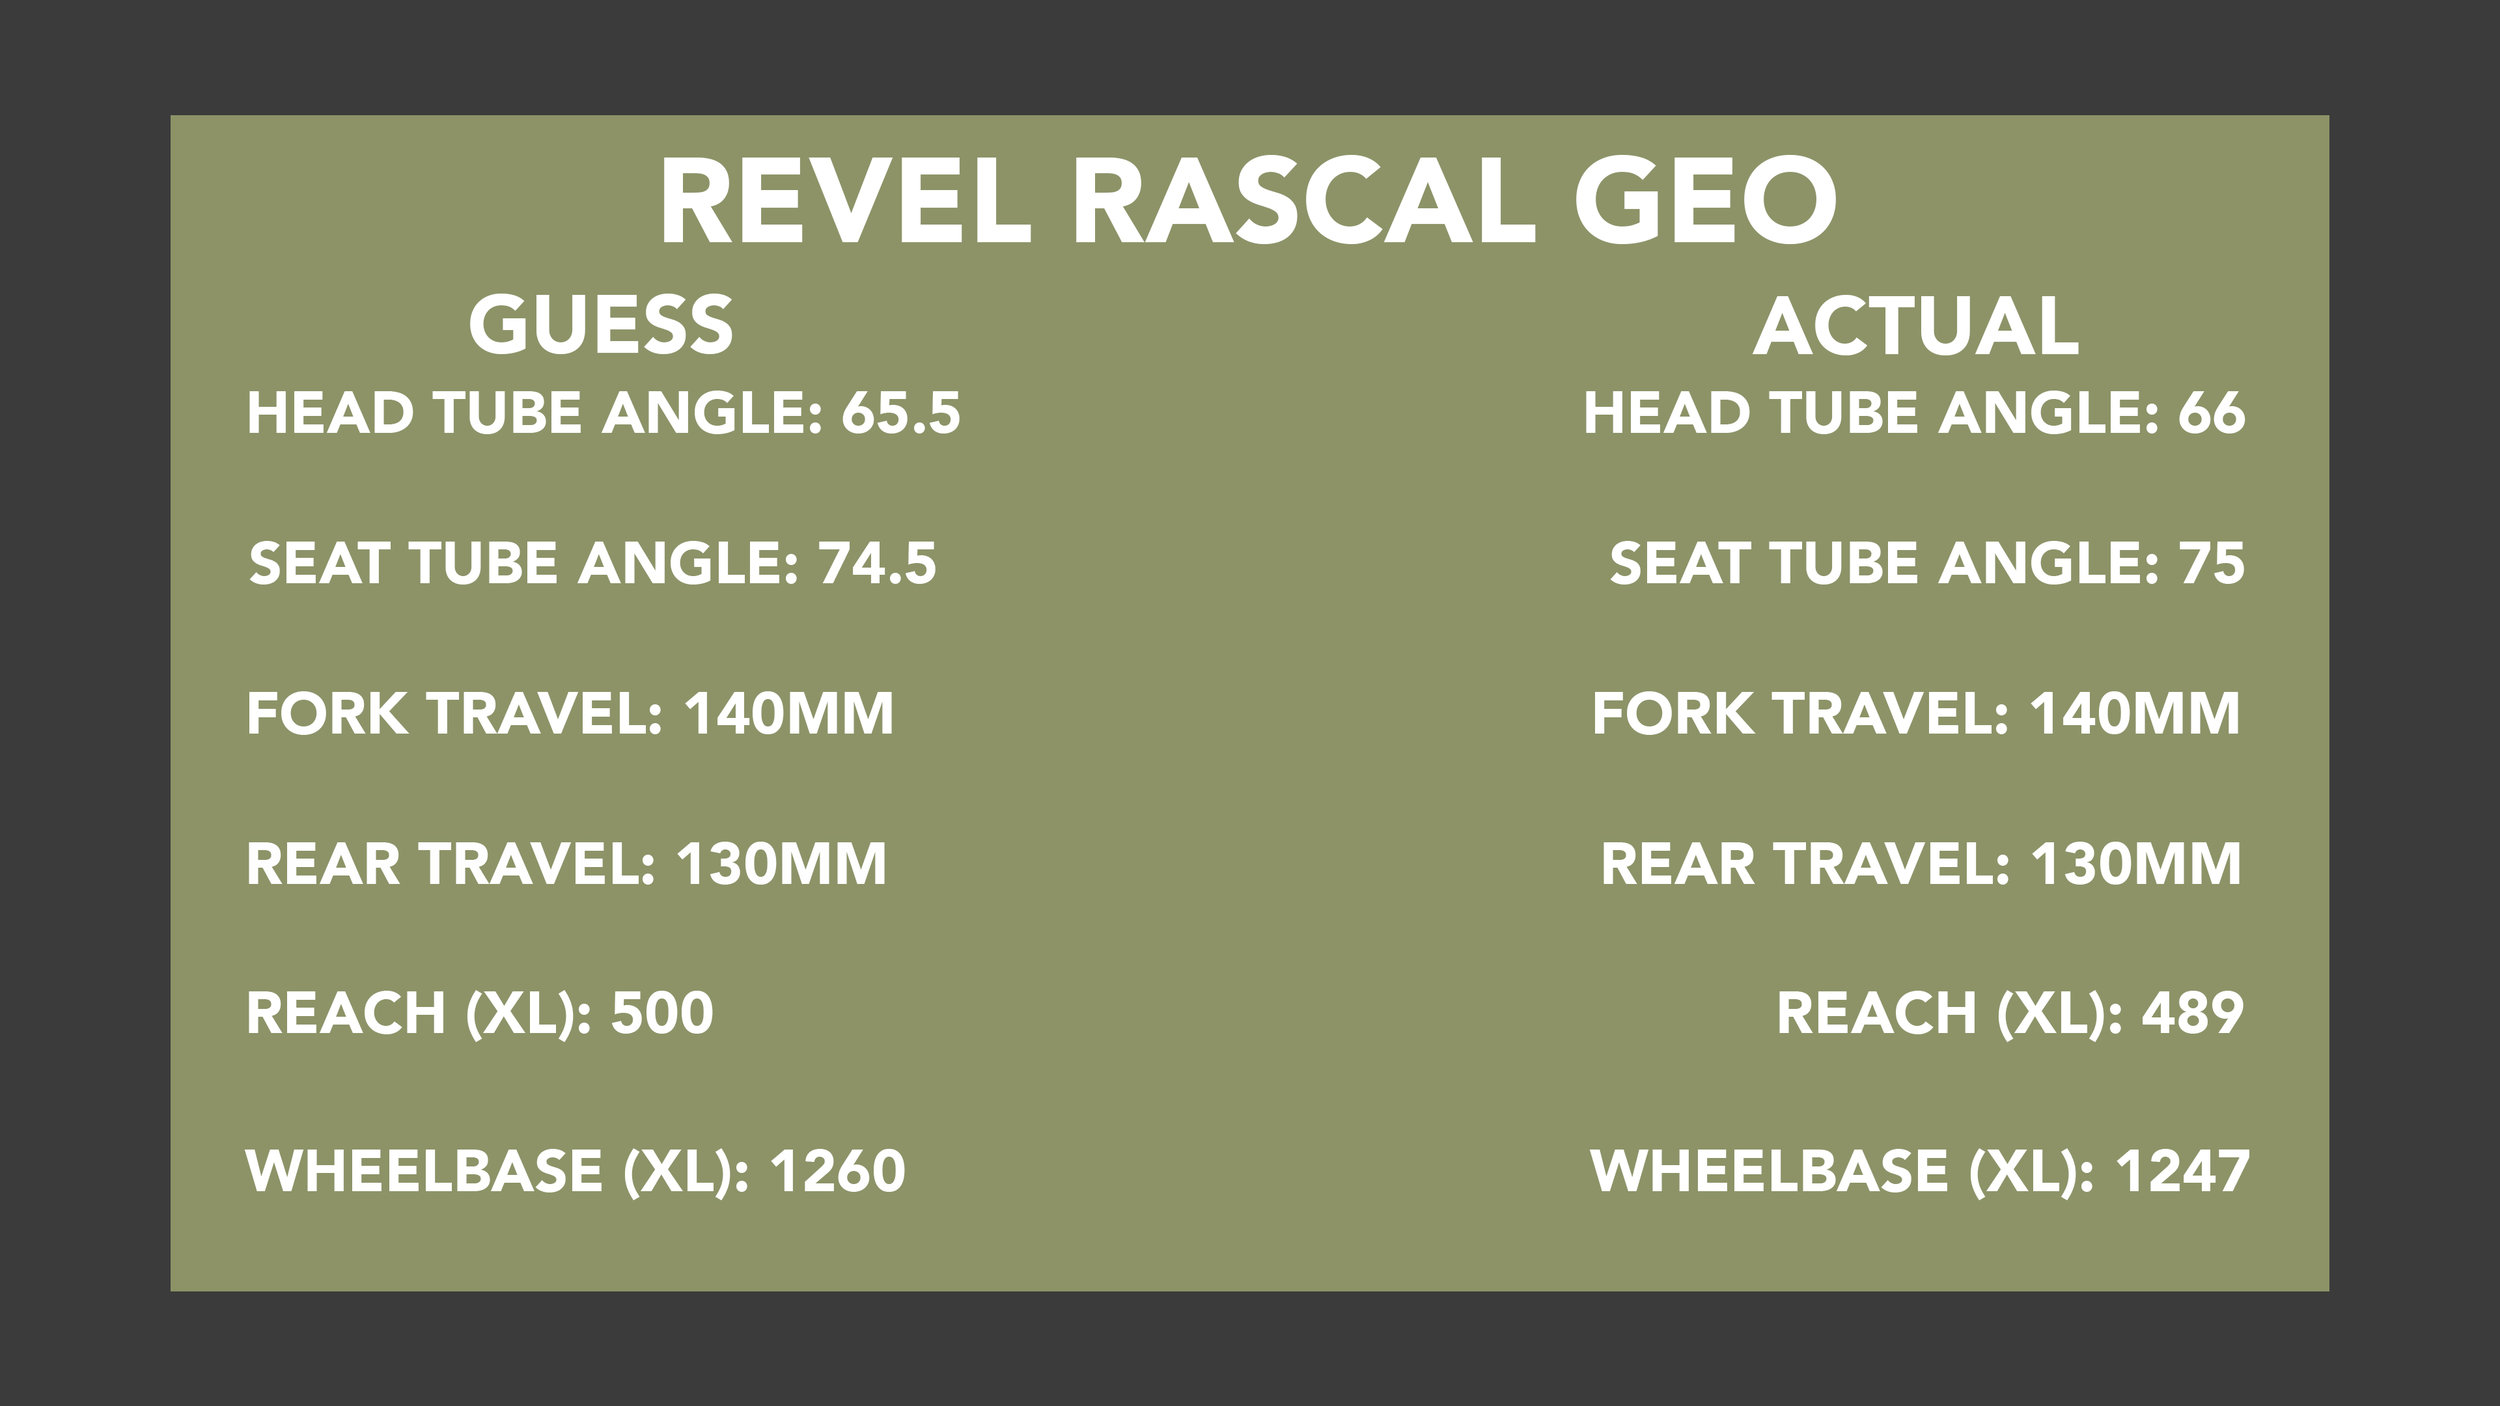 revel rascal geometry.jpg